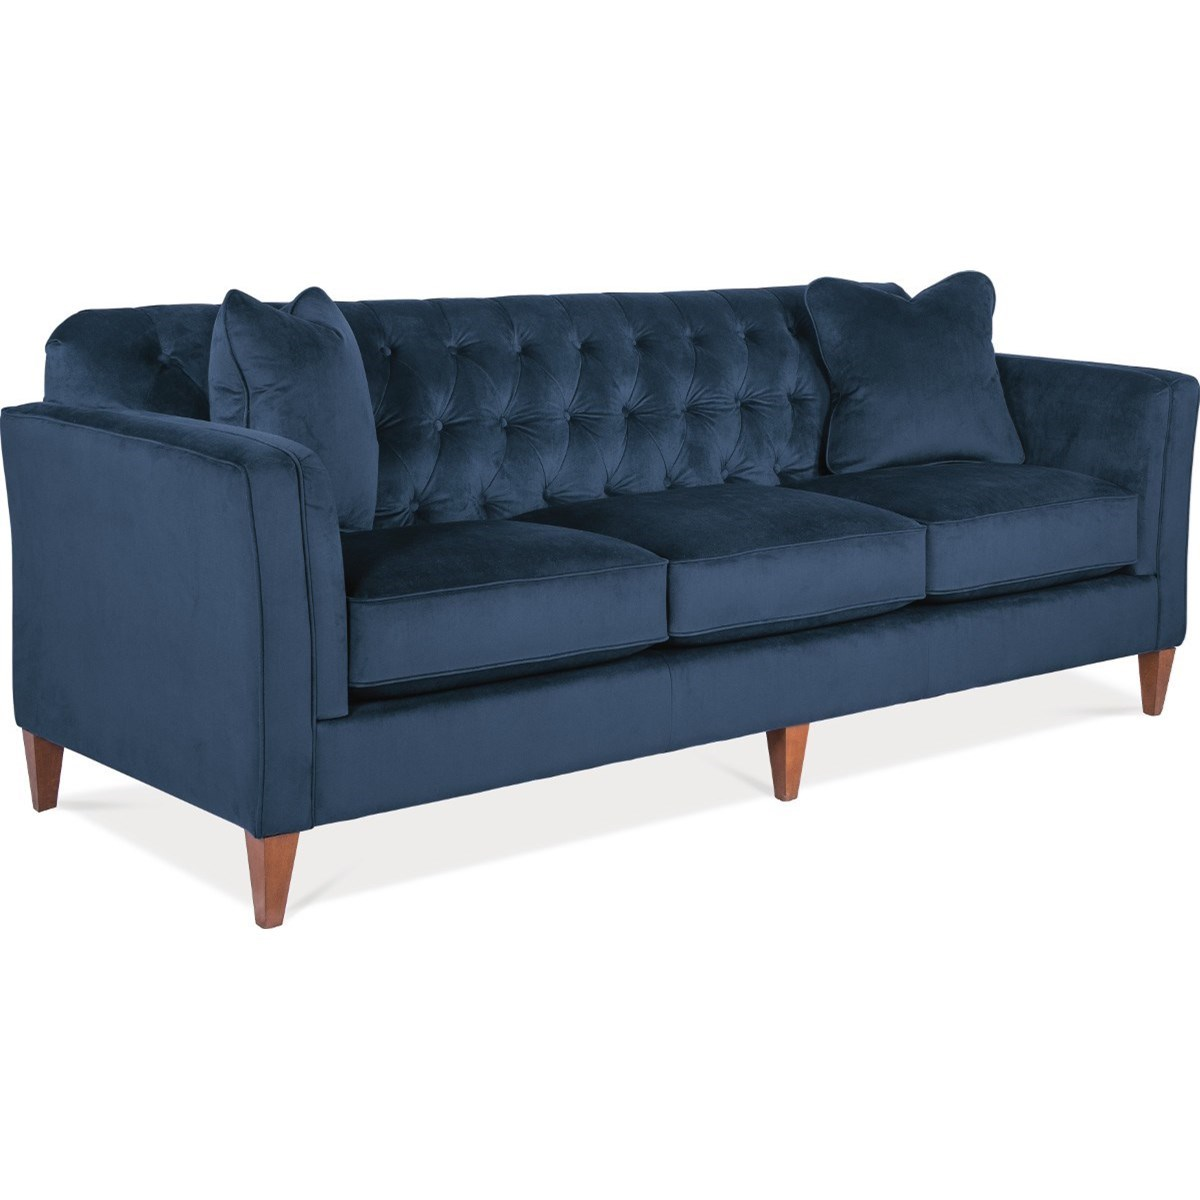 Transitional Premier Sofa with Chesterfield Button Tufting